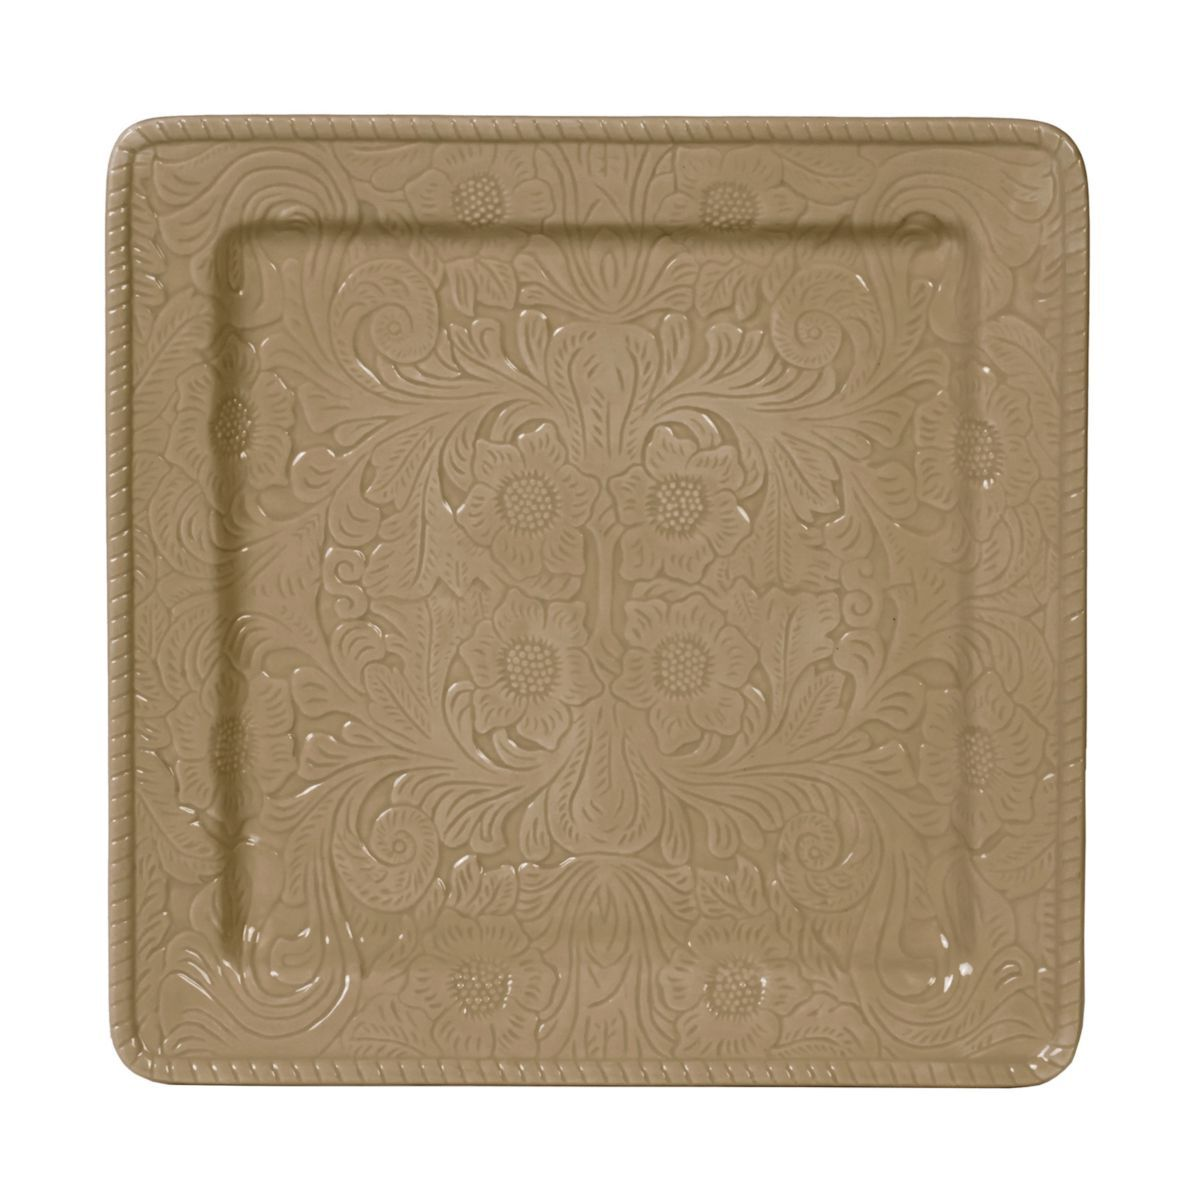 HiEnd Accents Savannah Taupe Serving Platter